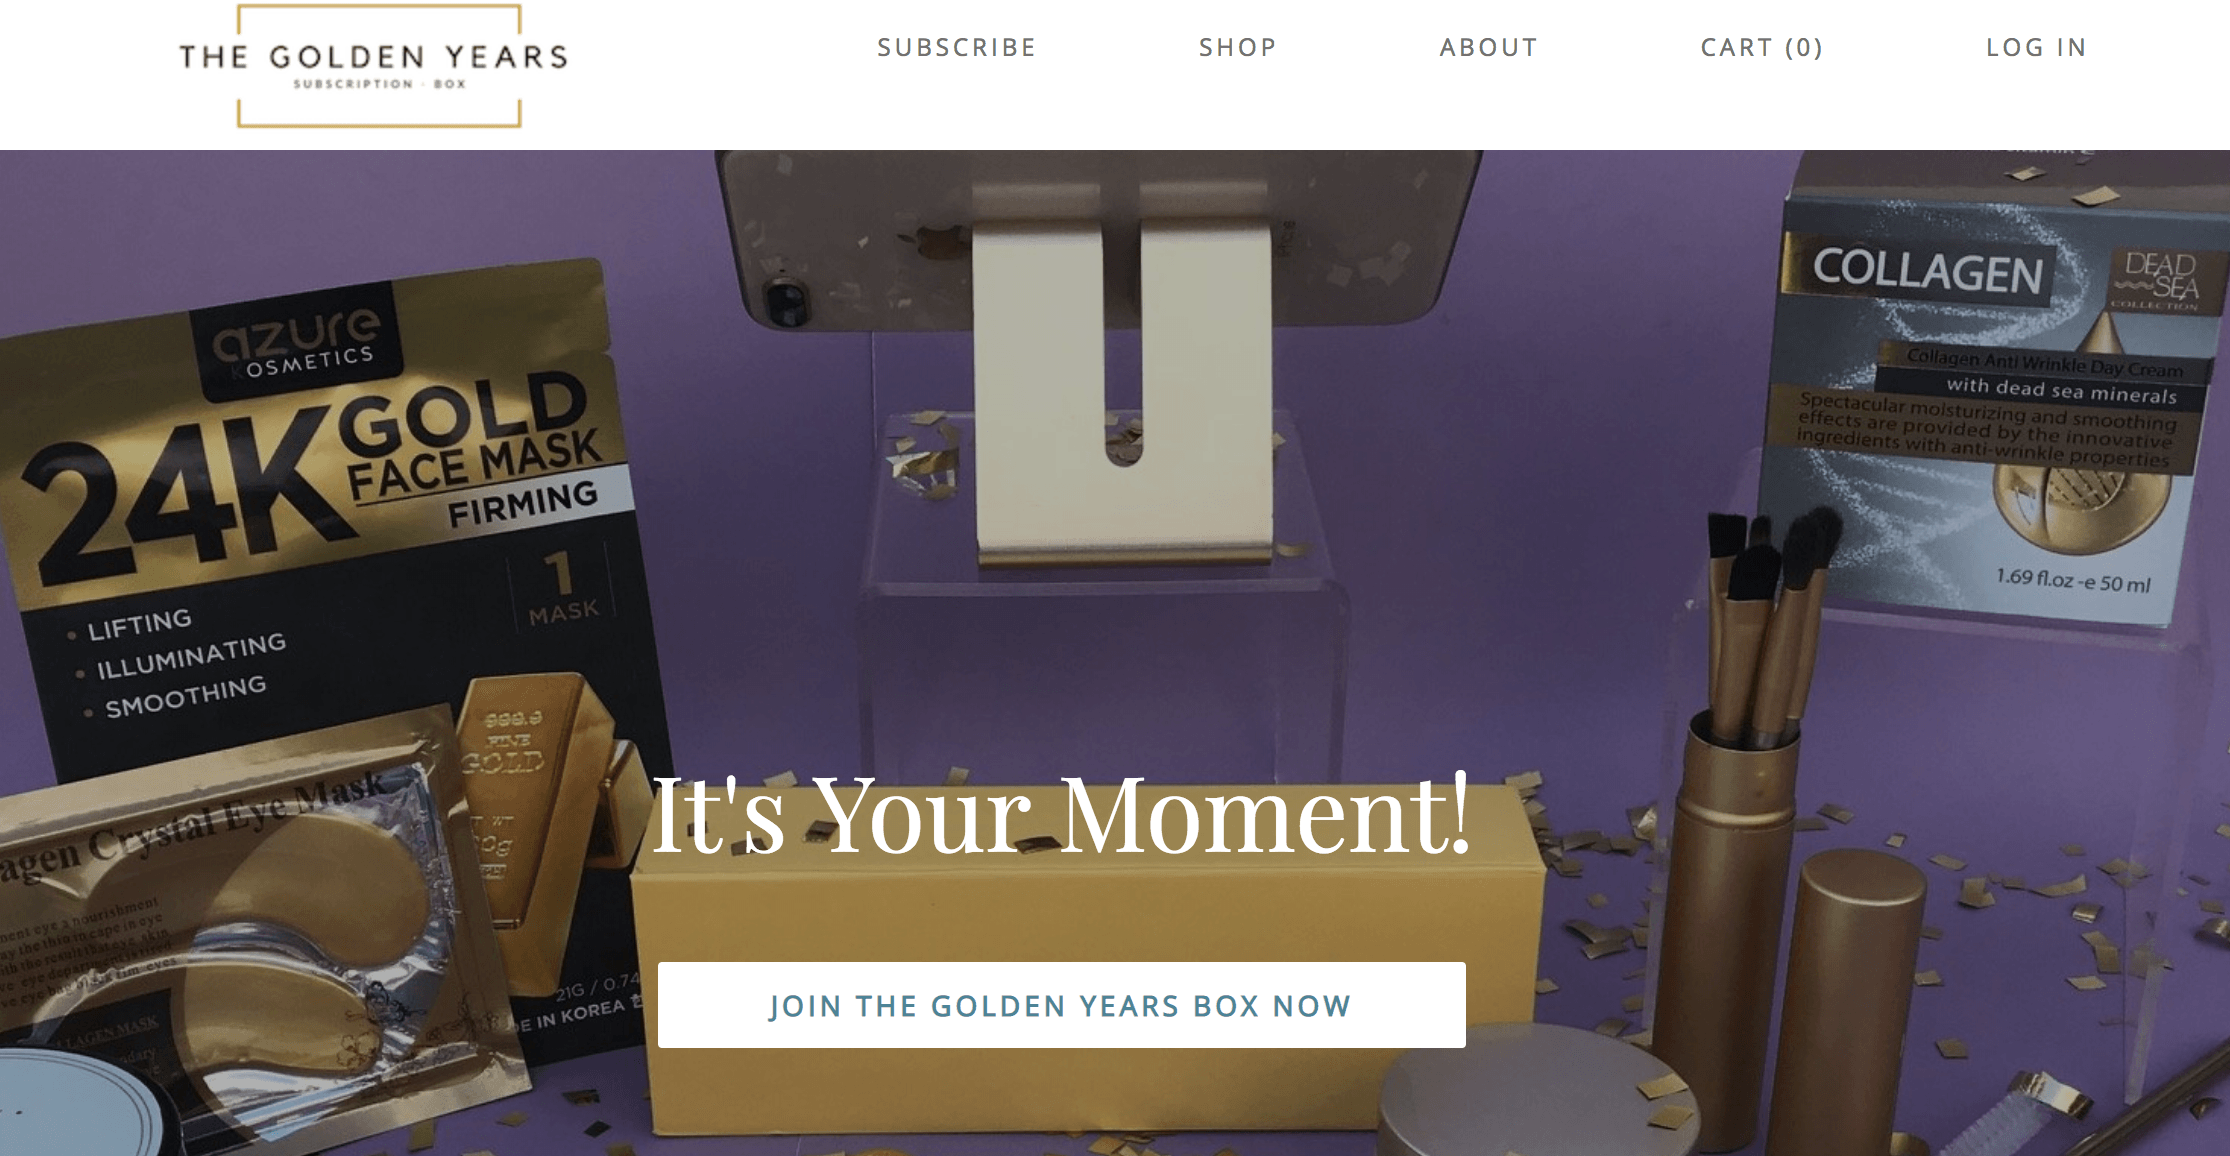 the golden years subscription box for women over 50